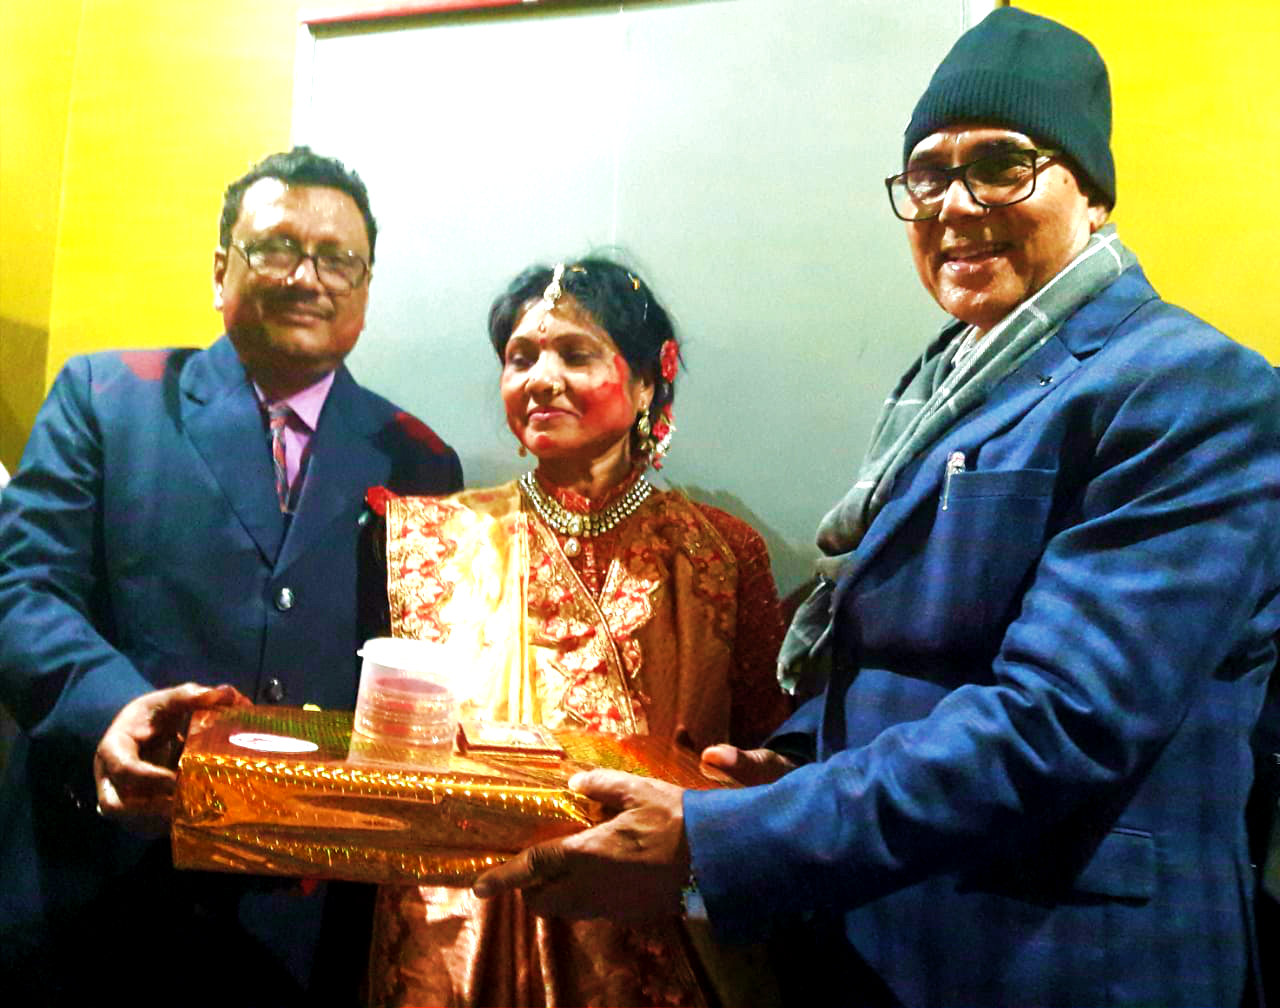 Samajsevi Dr.Bhupendra Madhepuri giving his blessings to the Silver Jubilee Couple Sanju & Shravan Sultania from Bhagyashree.